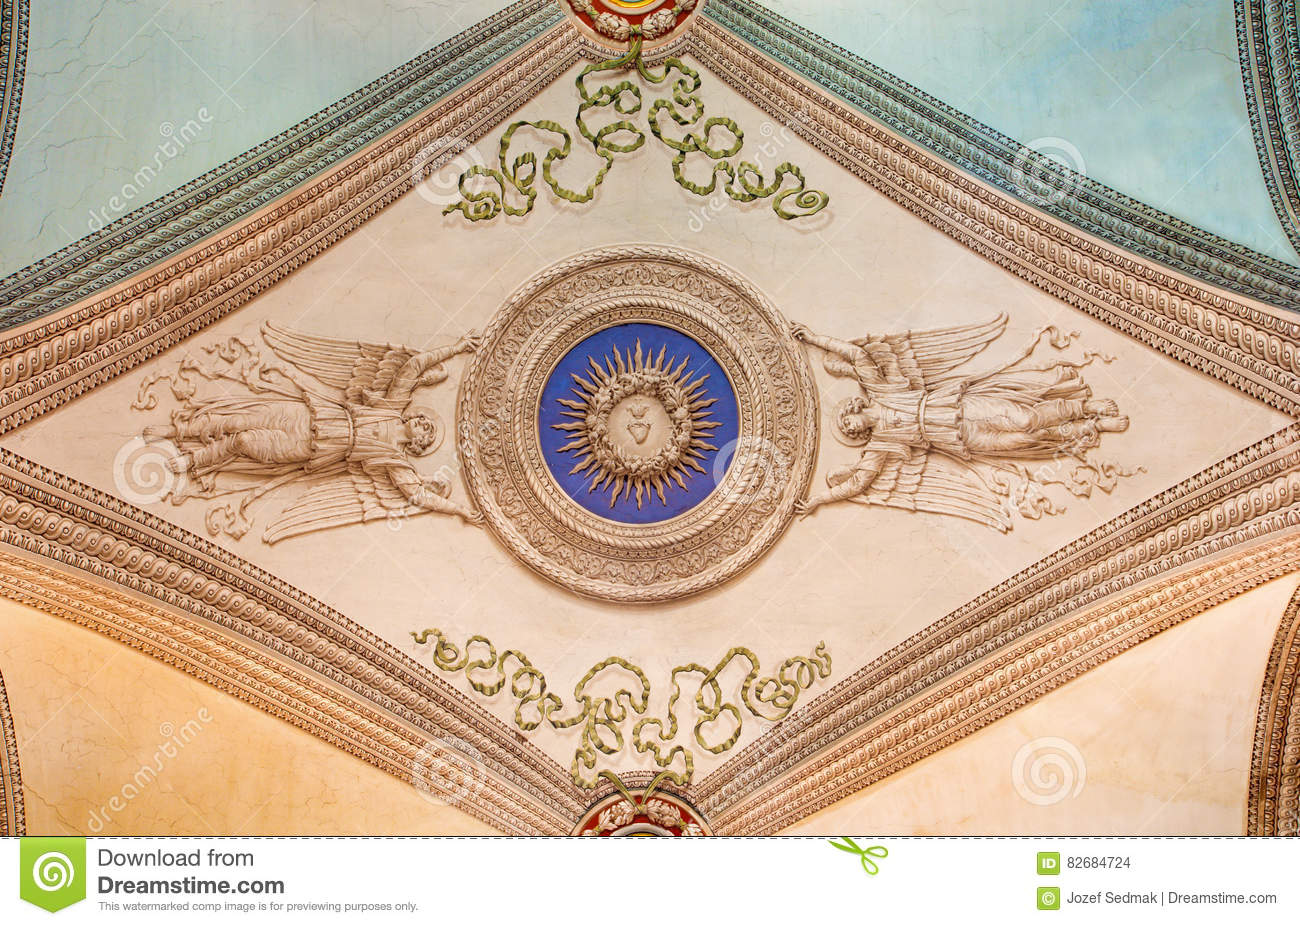 ROME, ITALY - MARCH 12, 2016: The ceiling frescoes in church Chiesa di Nostra Signora del Sacro Cuore by unknown artist